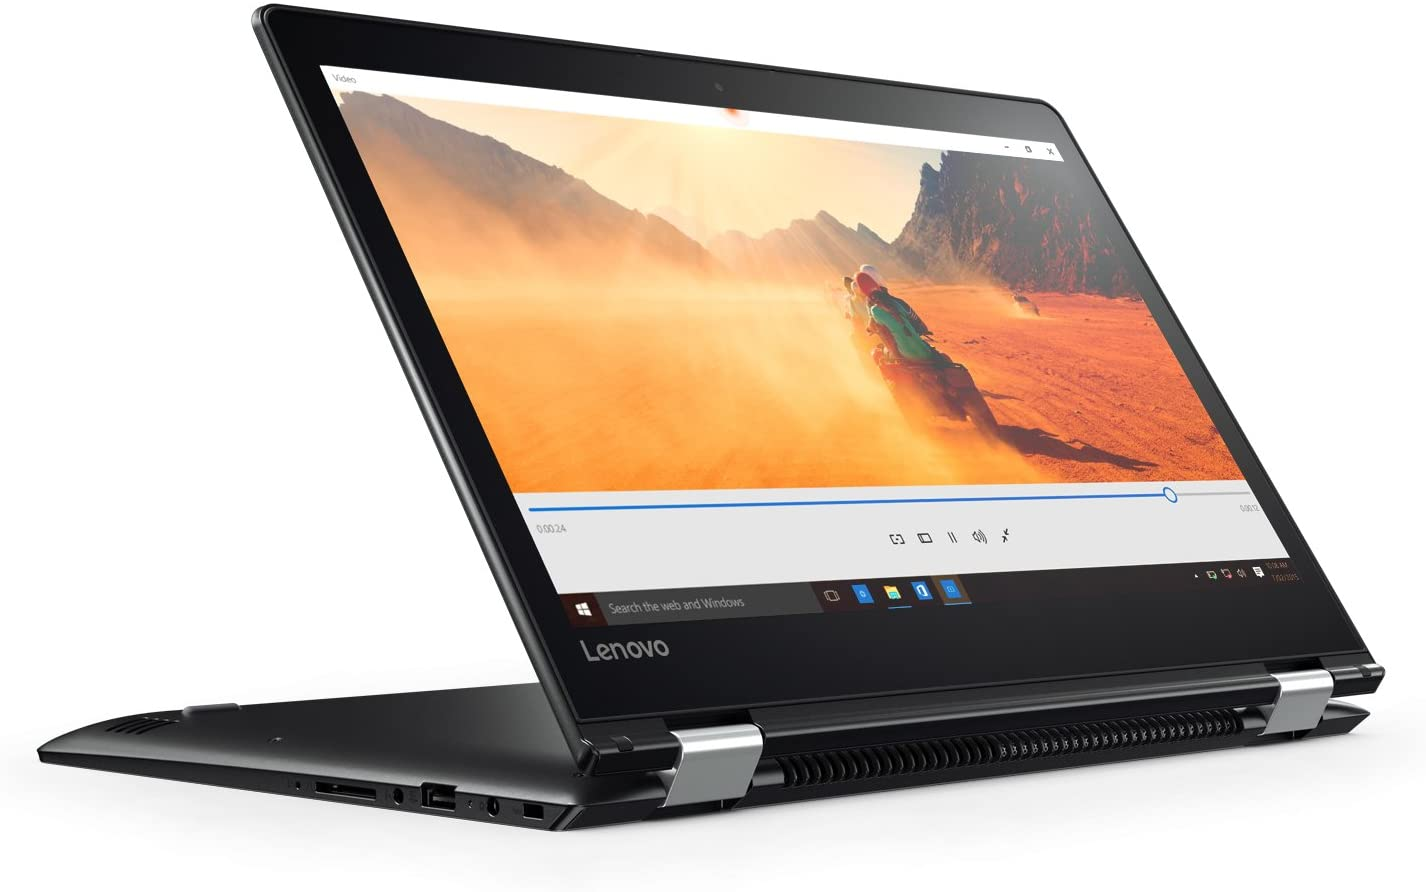 "Lenovo Flex 4 - 2-in-1 Laptop/Tablet 14.0"" Full HD Touchscreen Display (Intel Core i5, 8 GB RAM, 256 GB SSD, Windows 10) 80SA0004US"